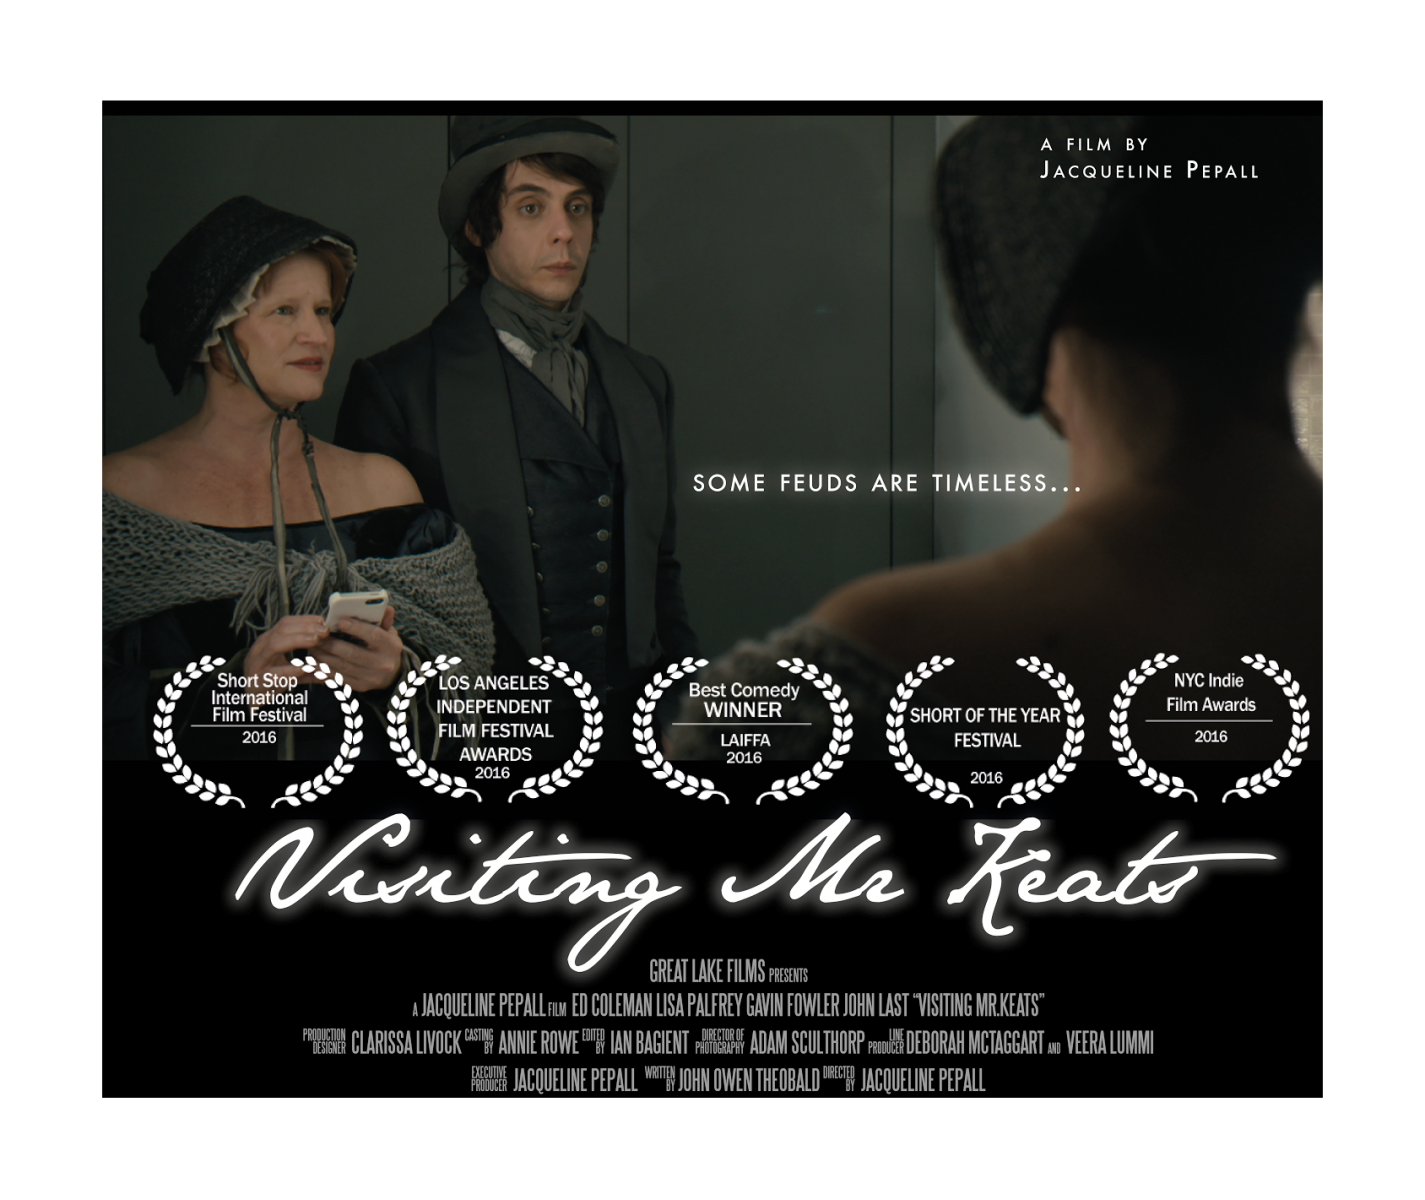 'Visiting Mr Keats' wins Best Comedy at the Los Angeles Independent Film Festival Awards